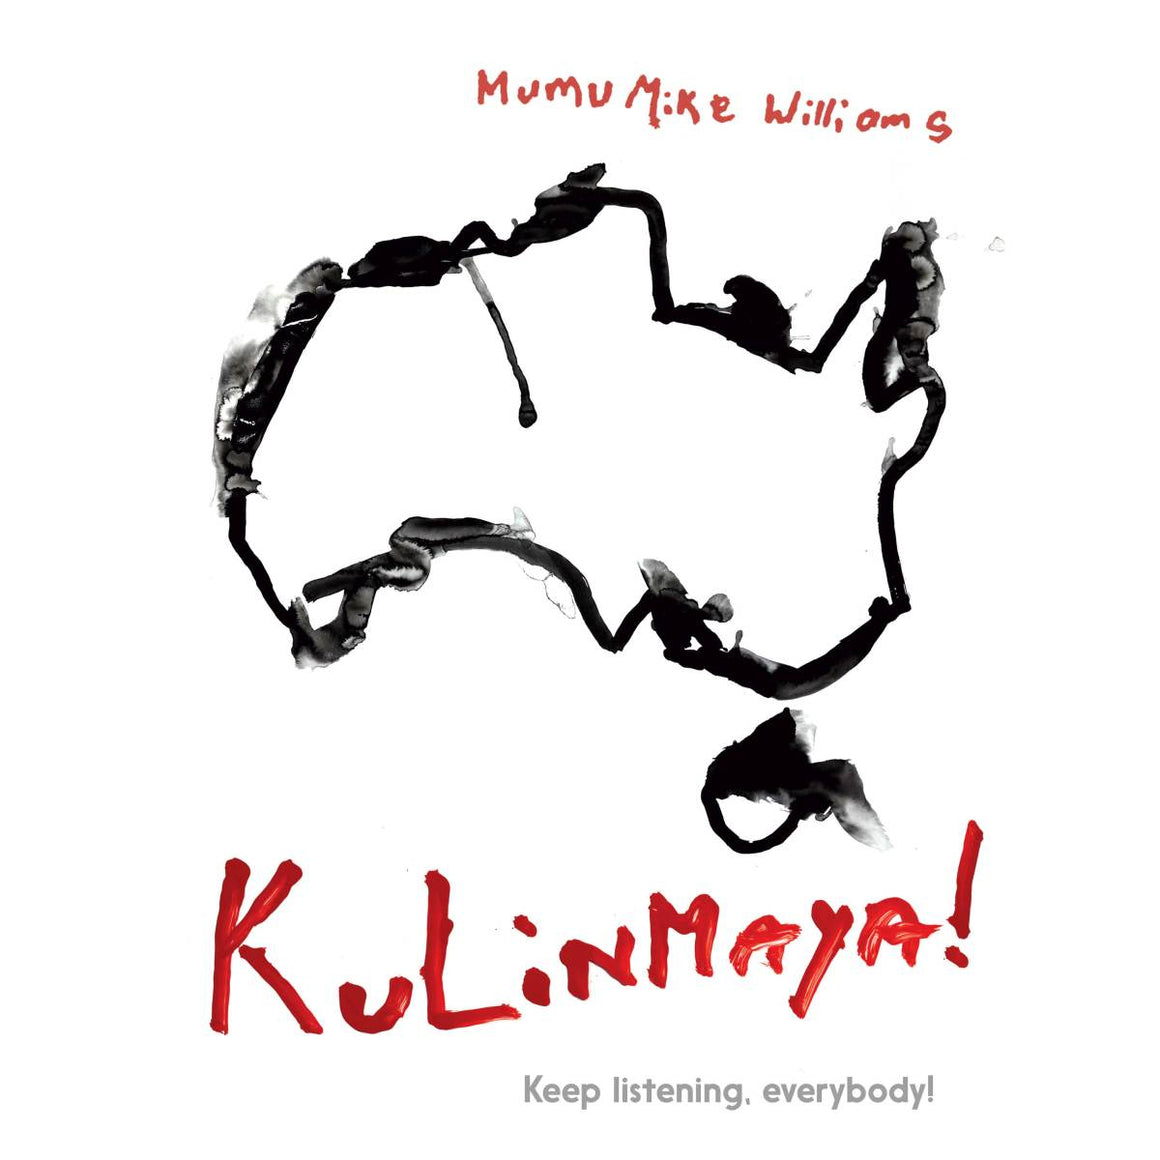 A book cover with Aboriginal cover art.  The image and titles are hand painted in black and red. There is a black outline of the continent of Australia rendered in finger painting